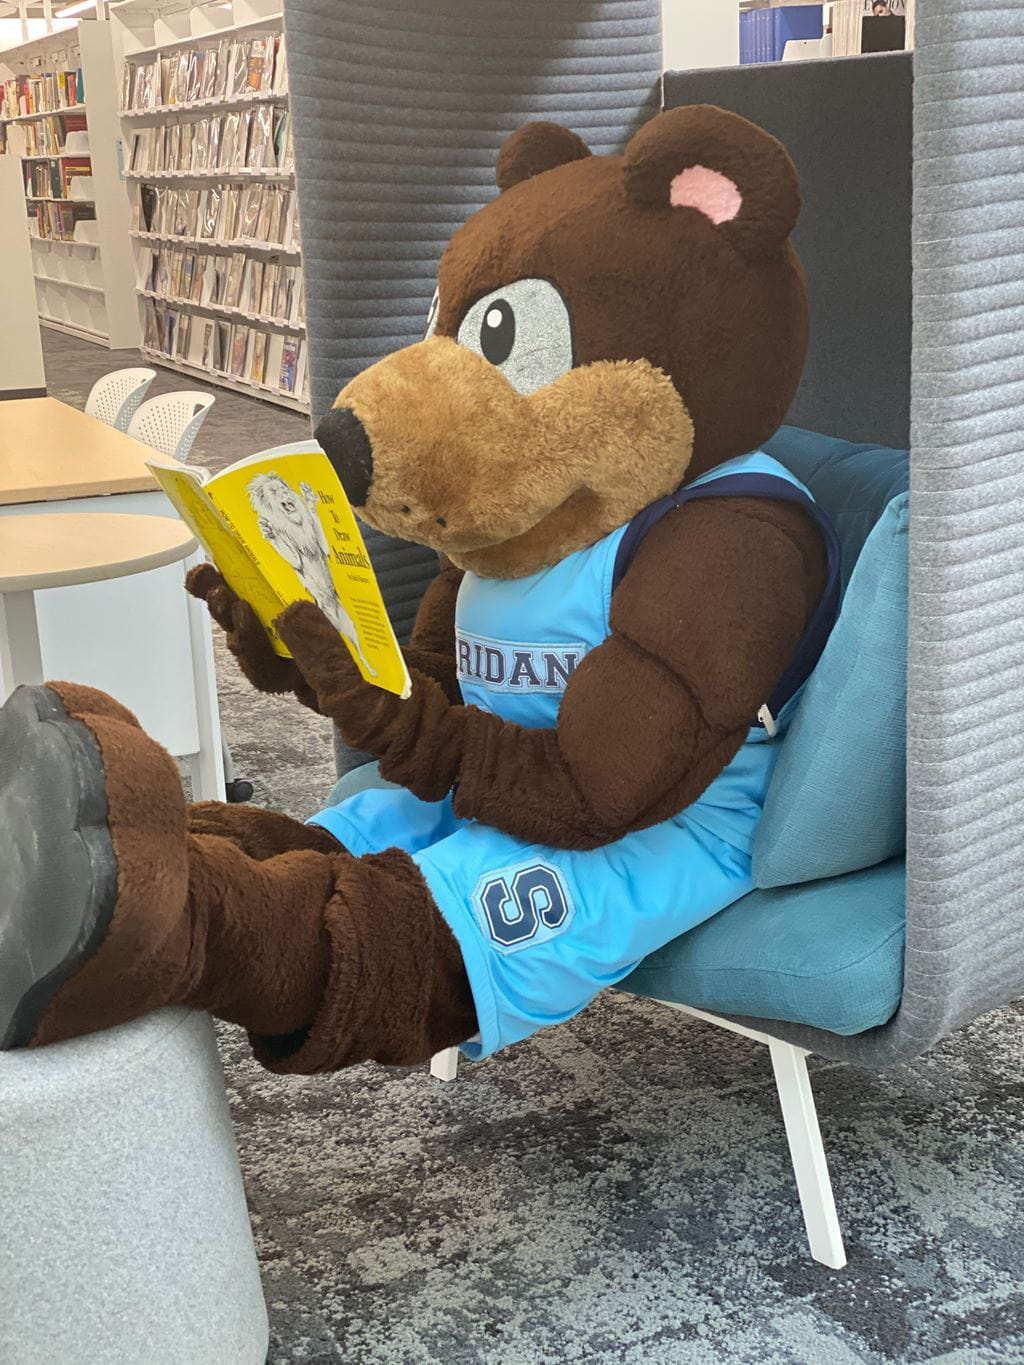 Bruno mascot reading a yellow book